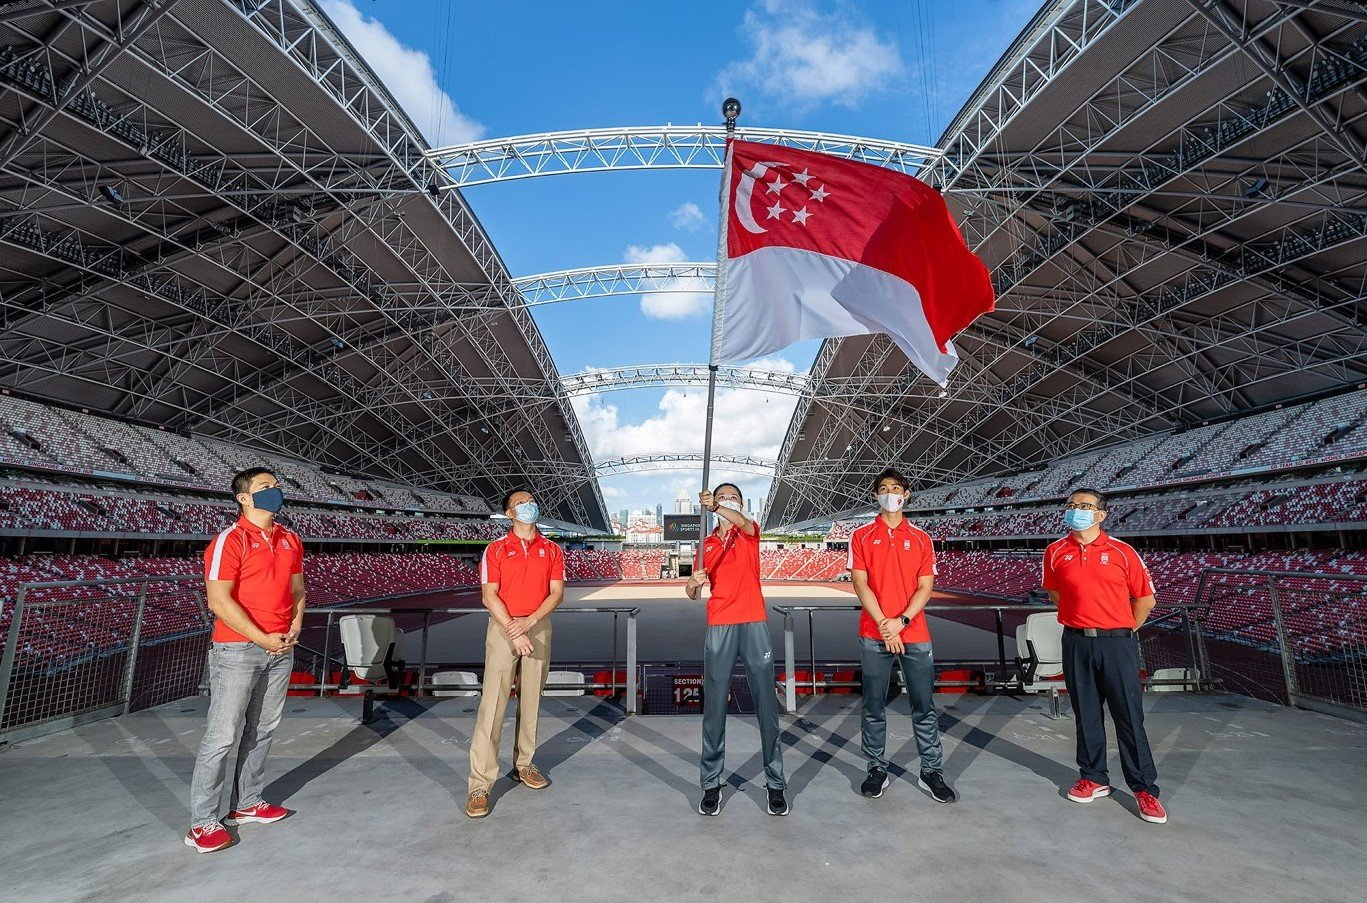 All systems go for Team Singapore at the Tokyo Olympic Games